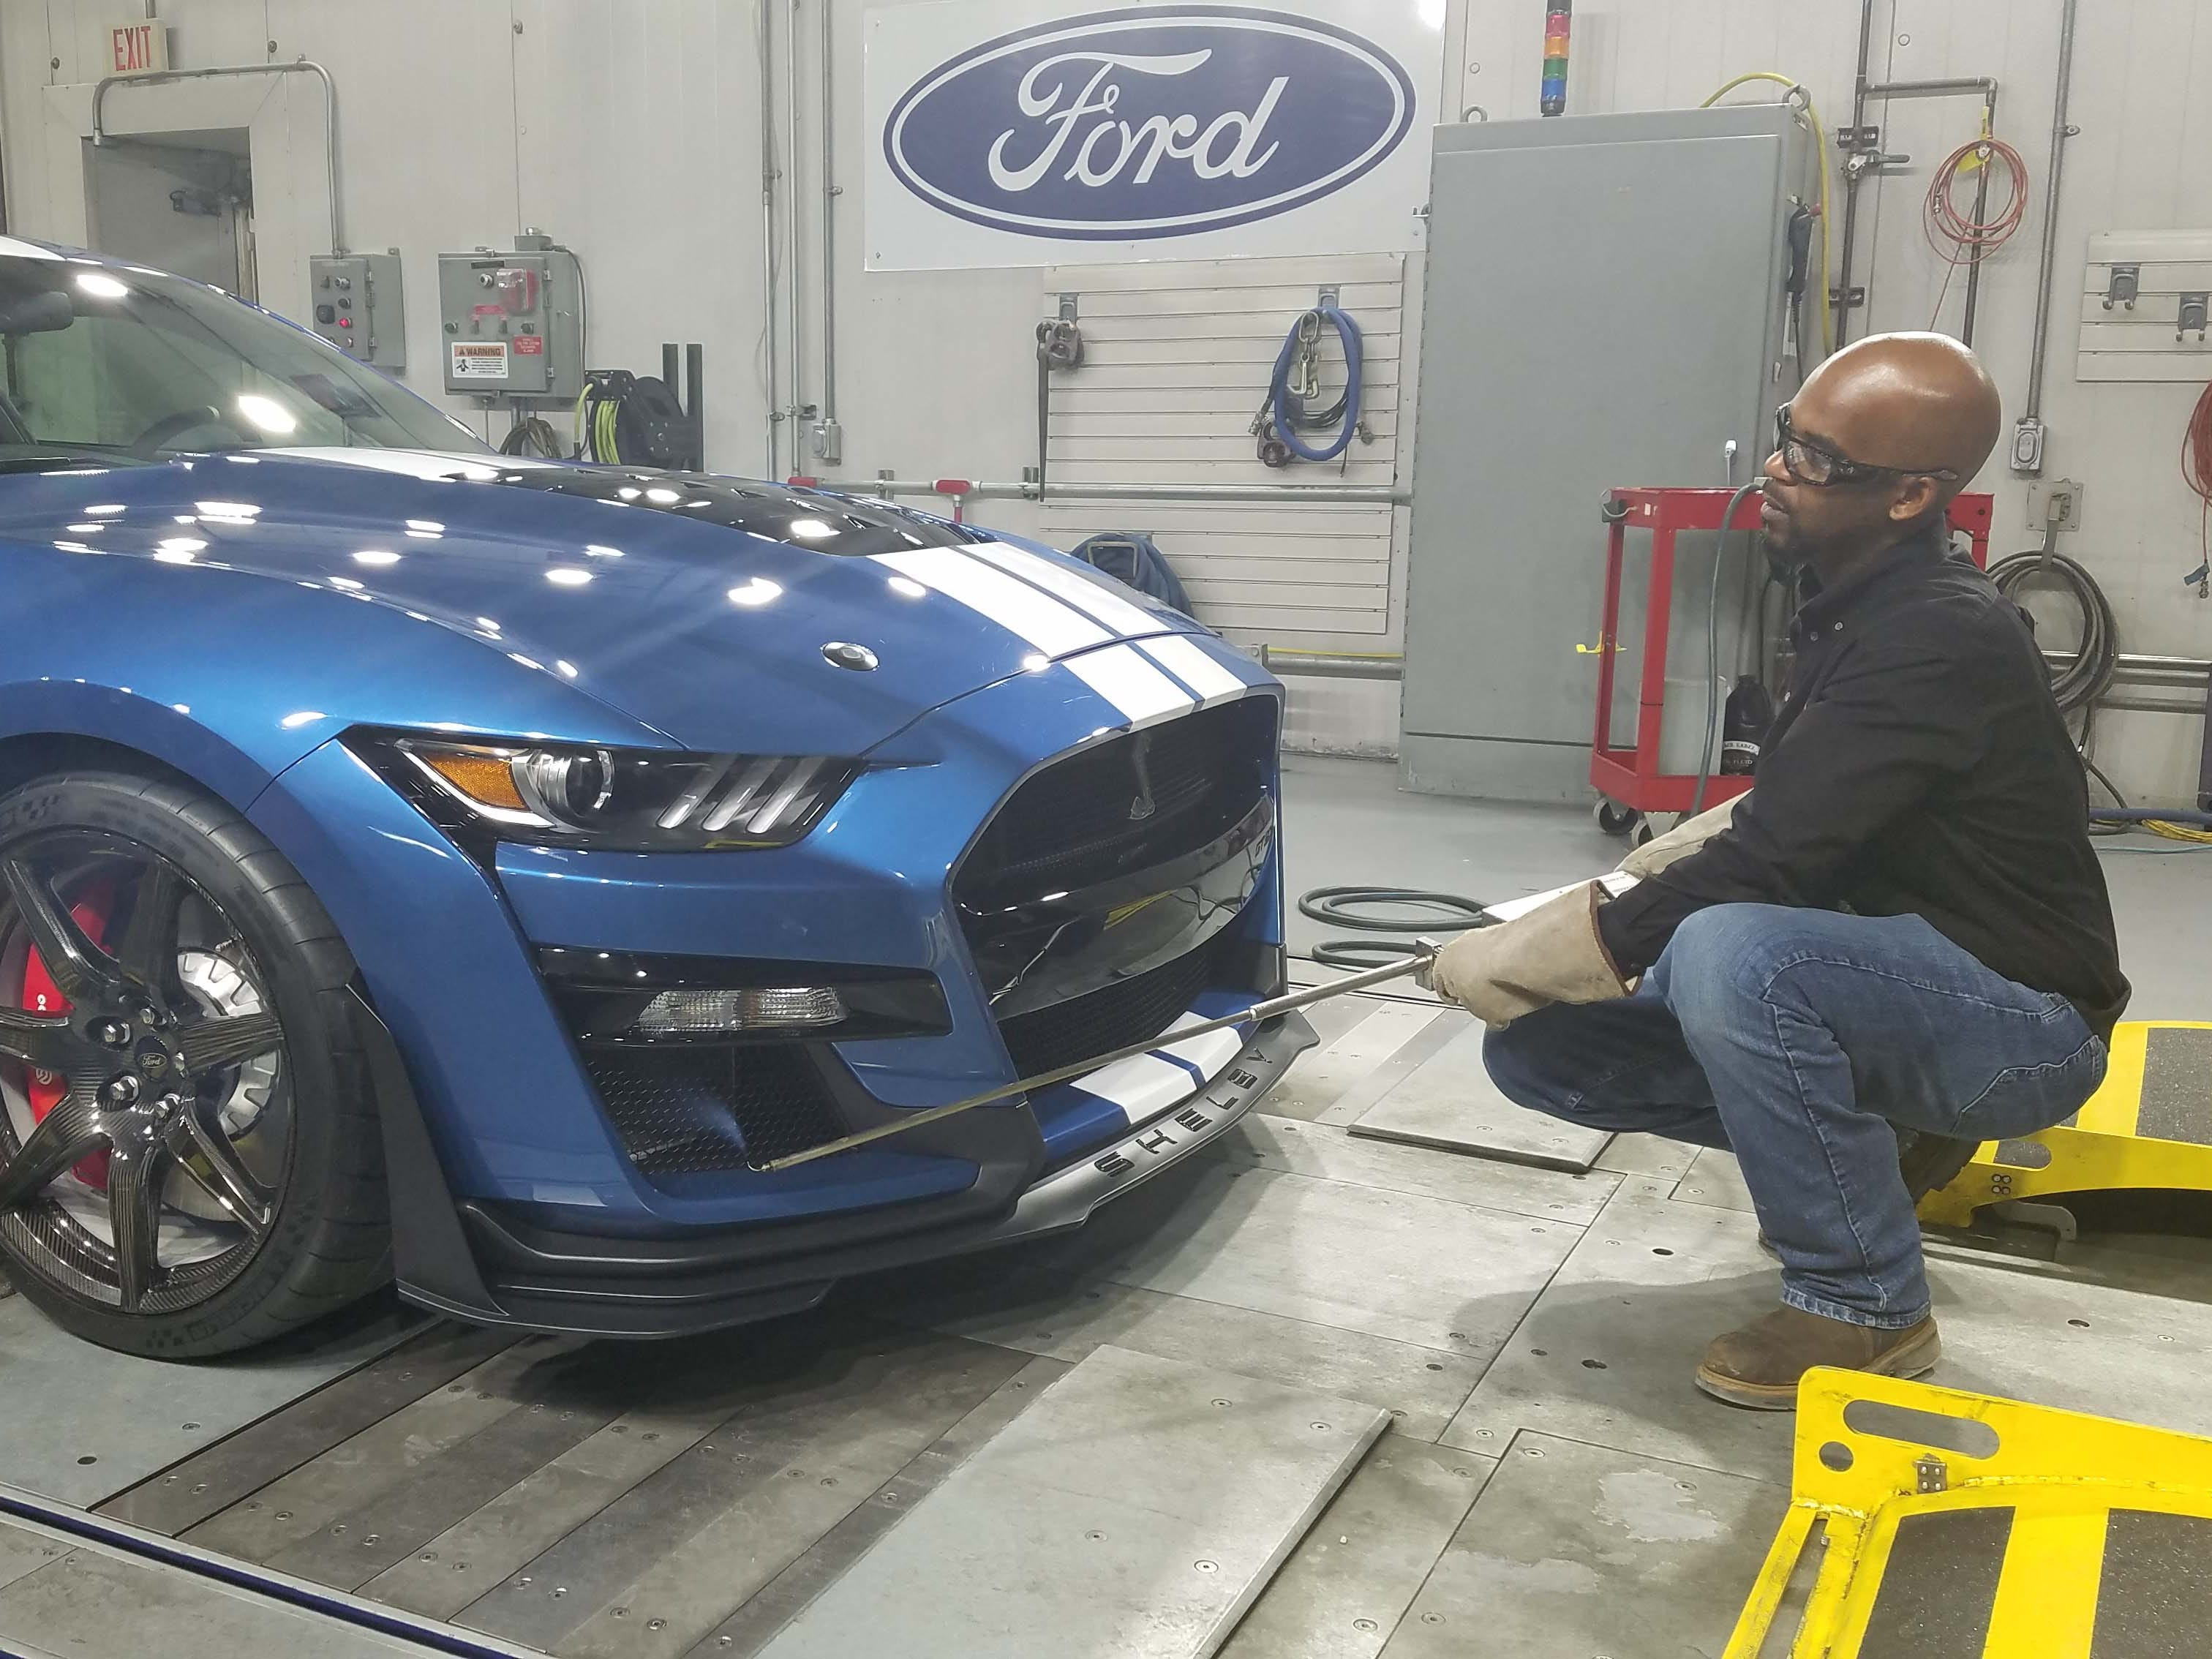 A ford technician demonstrates win tunnel techniques used to evaluate airflow through the 2020 Ford Mustang GT500's front splitter - allowing for better downforce on track - and better cooling for the engine.